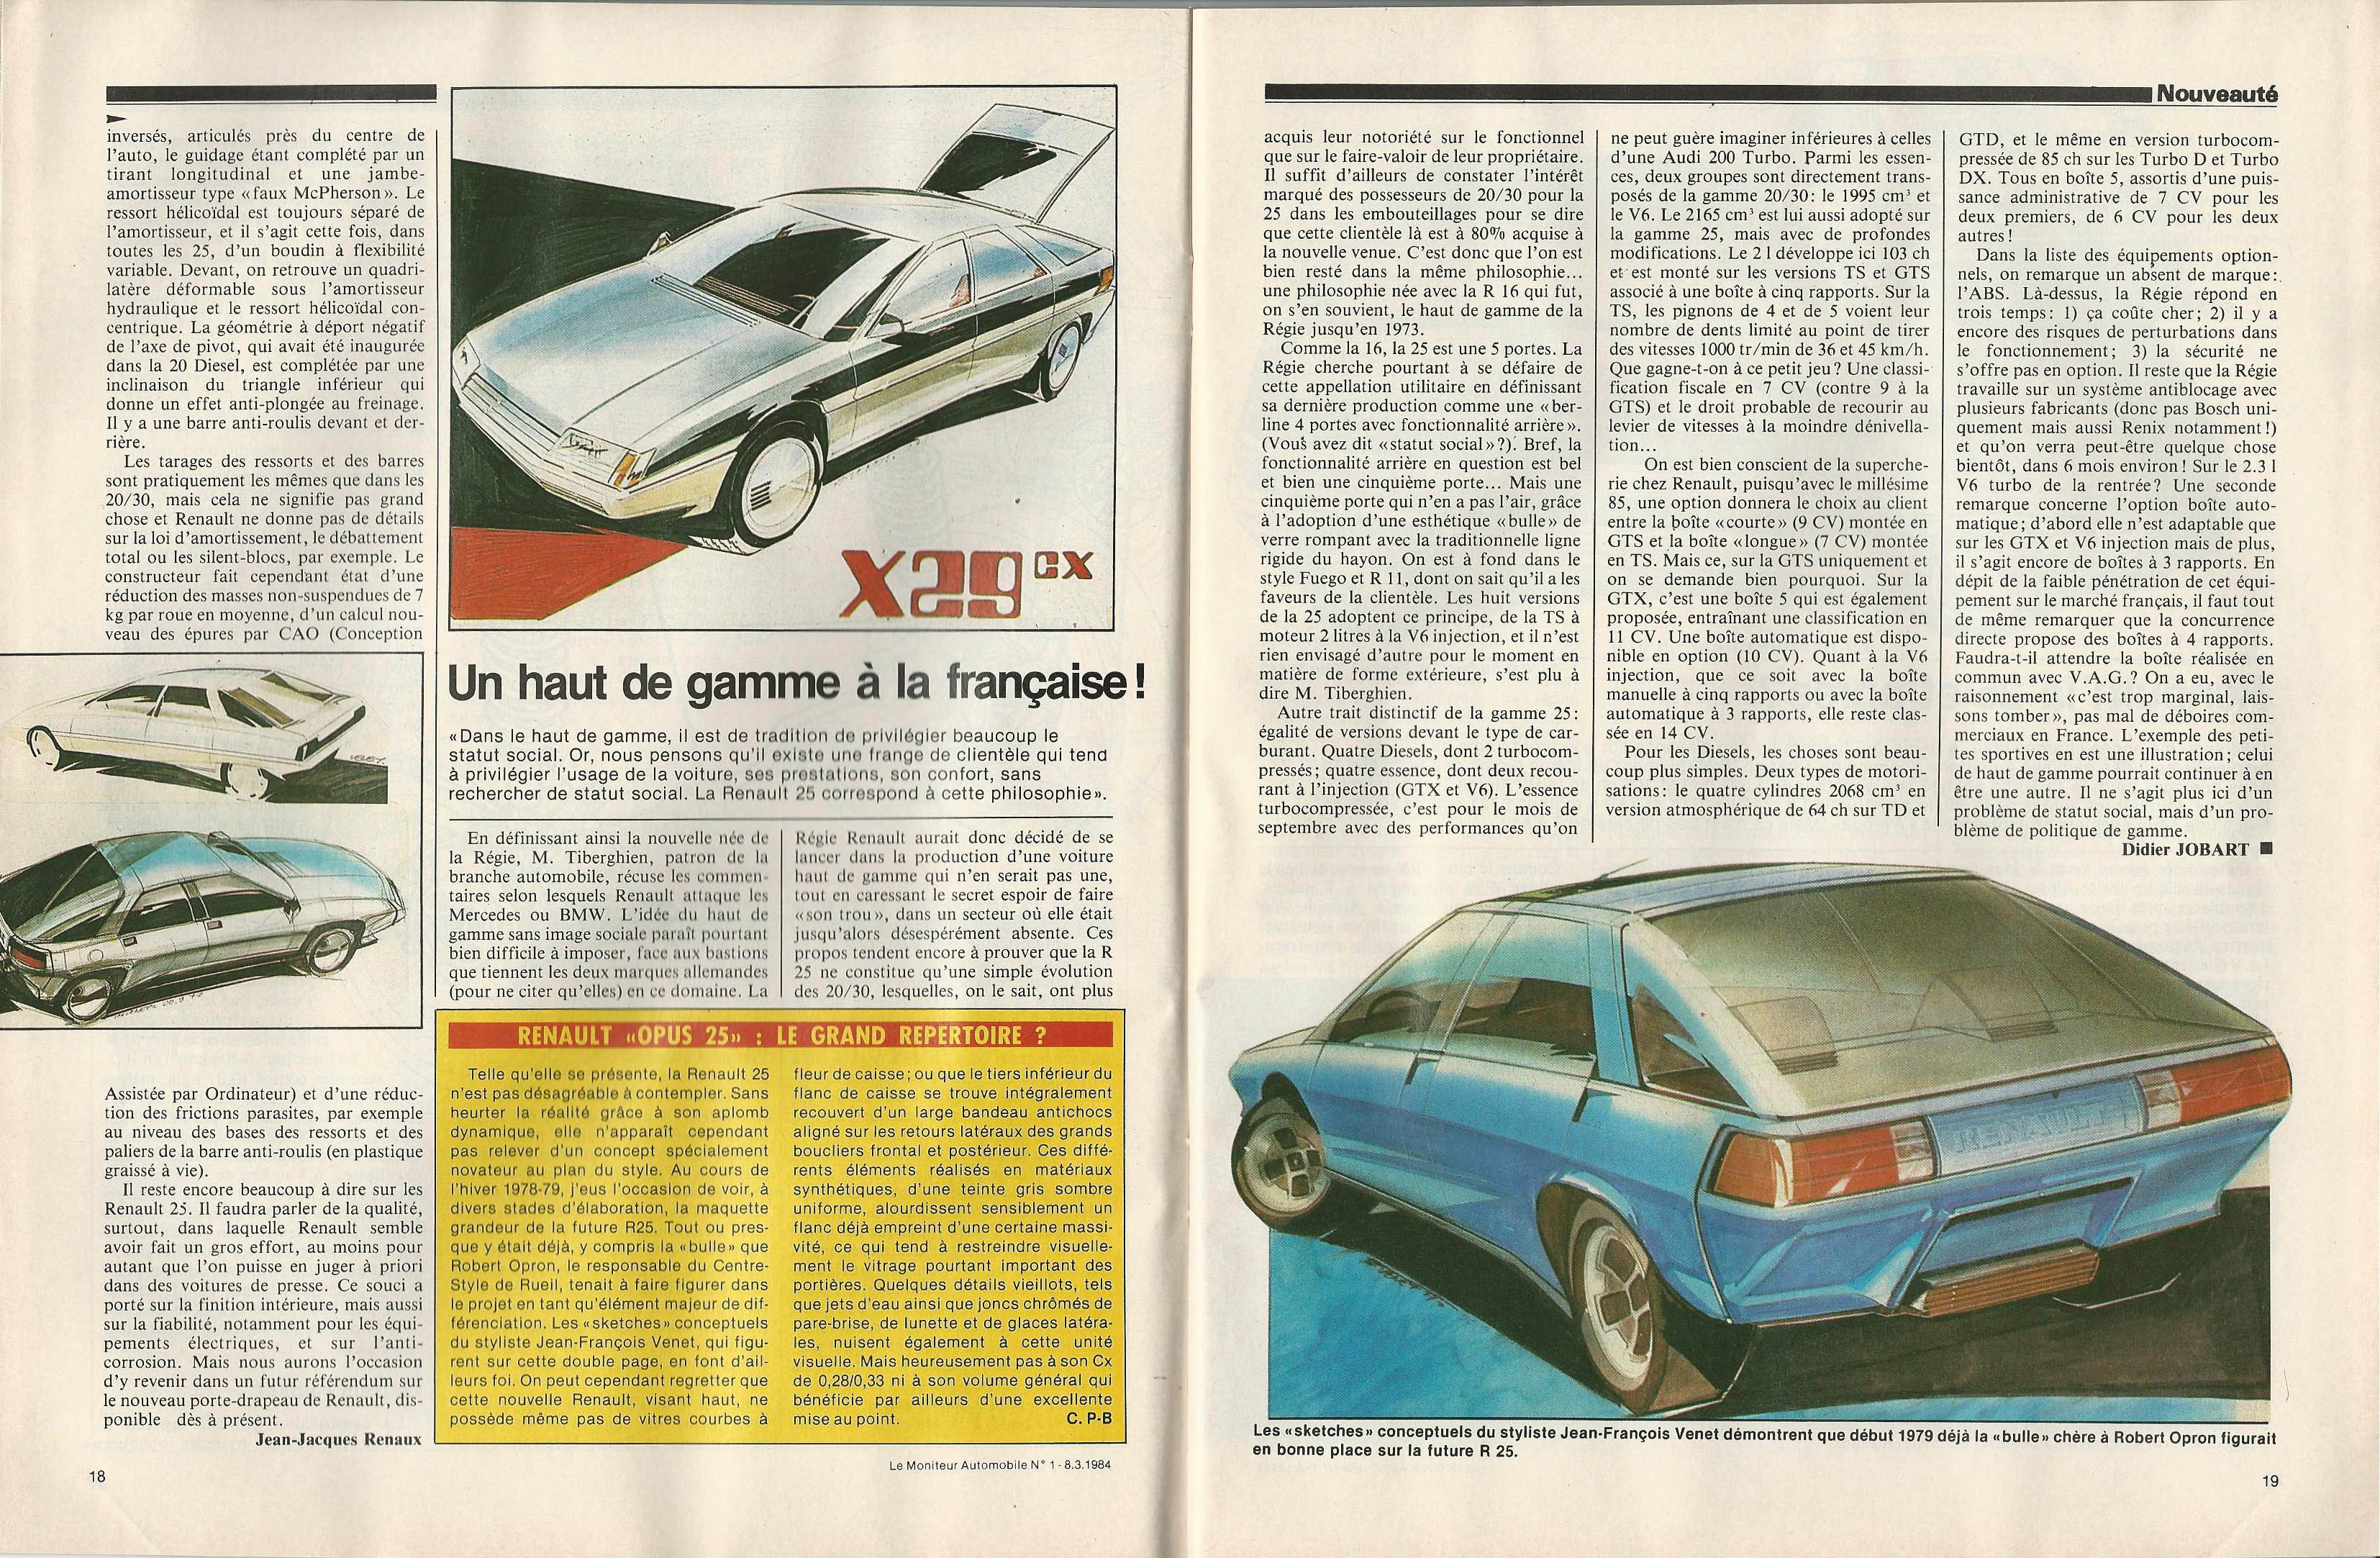 Moniteur Automobile 01 - 08 Mars 1984 (10)